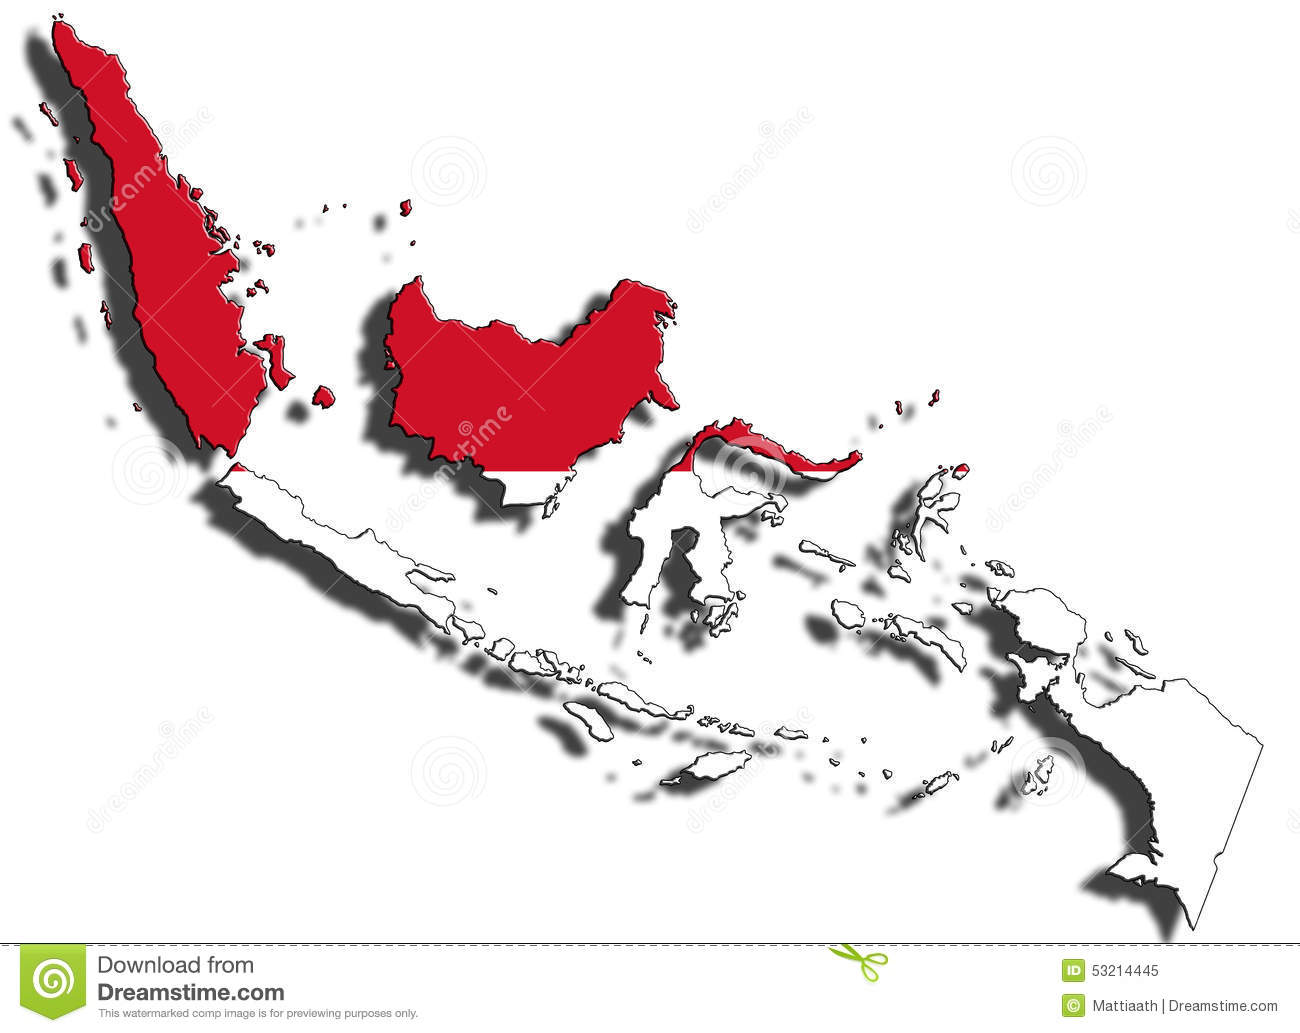 Indonesia flag country clipart graphic transparent library Outline Of Indonesia With The National Flag Stock Illustration ... graphic transparent library